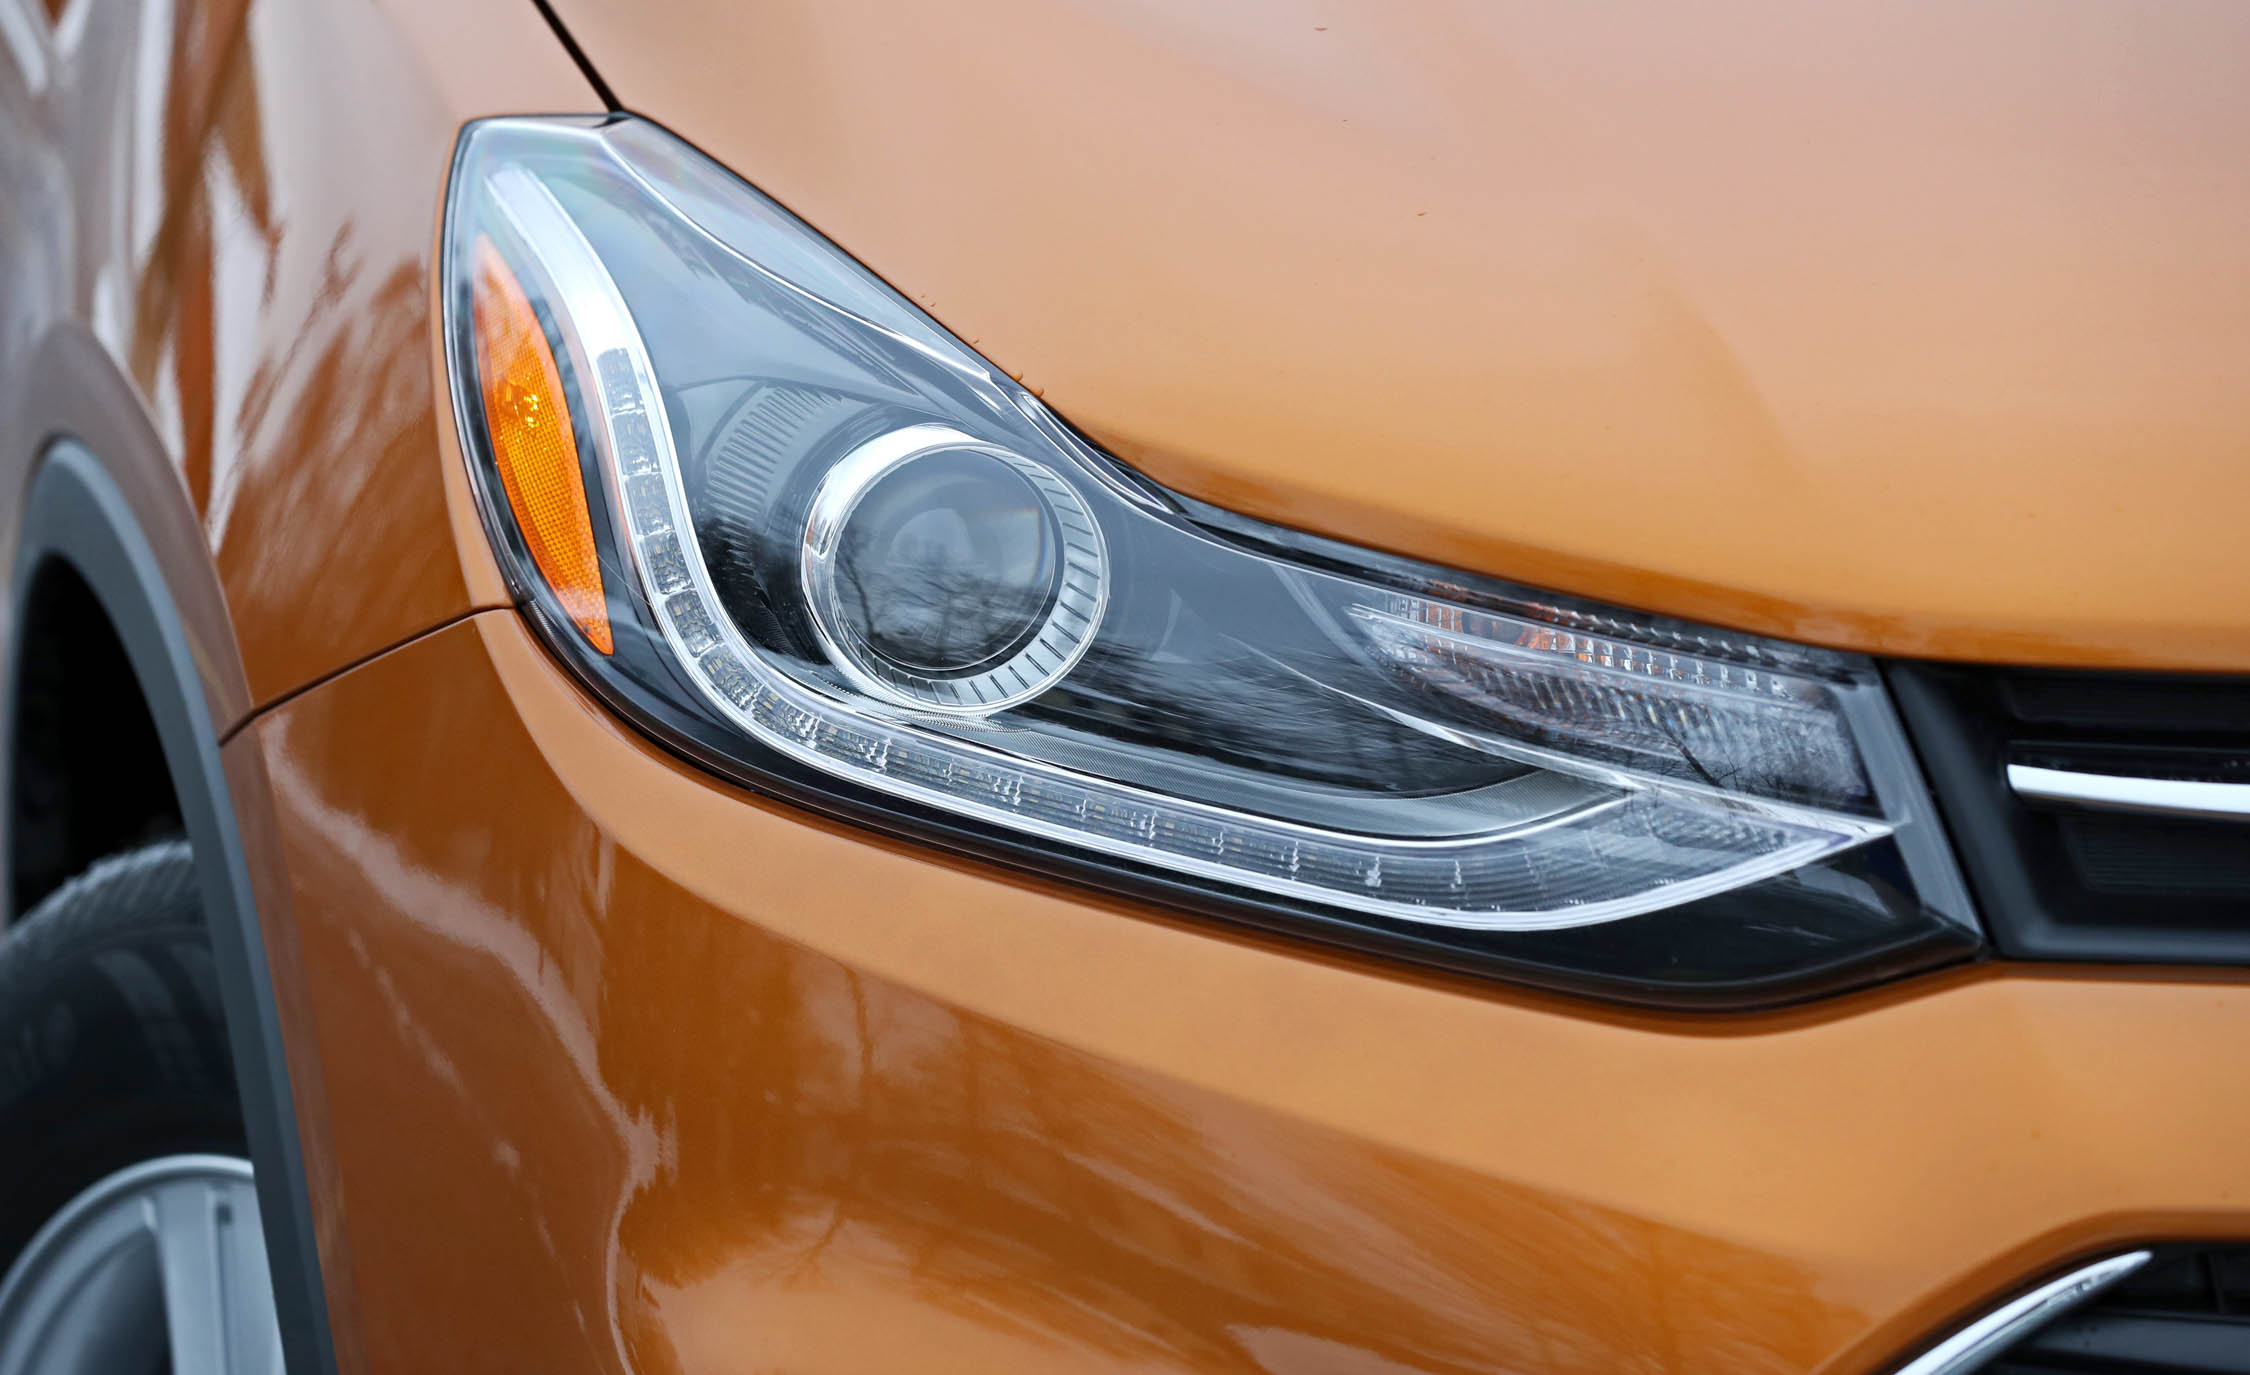 2017 Chevrolet Trax Exterior View Headlight (Photo 11 of 47)